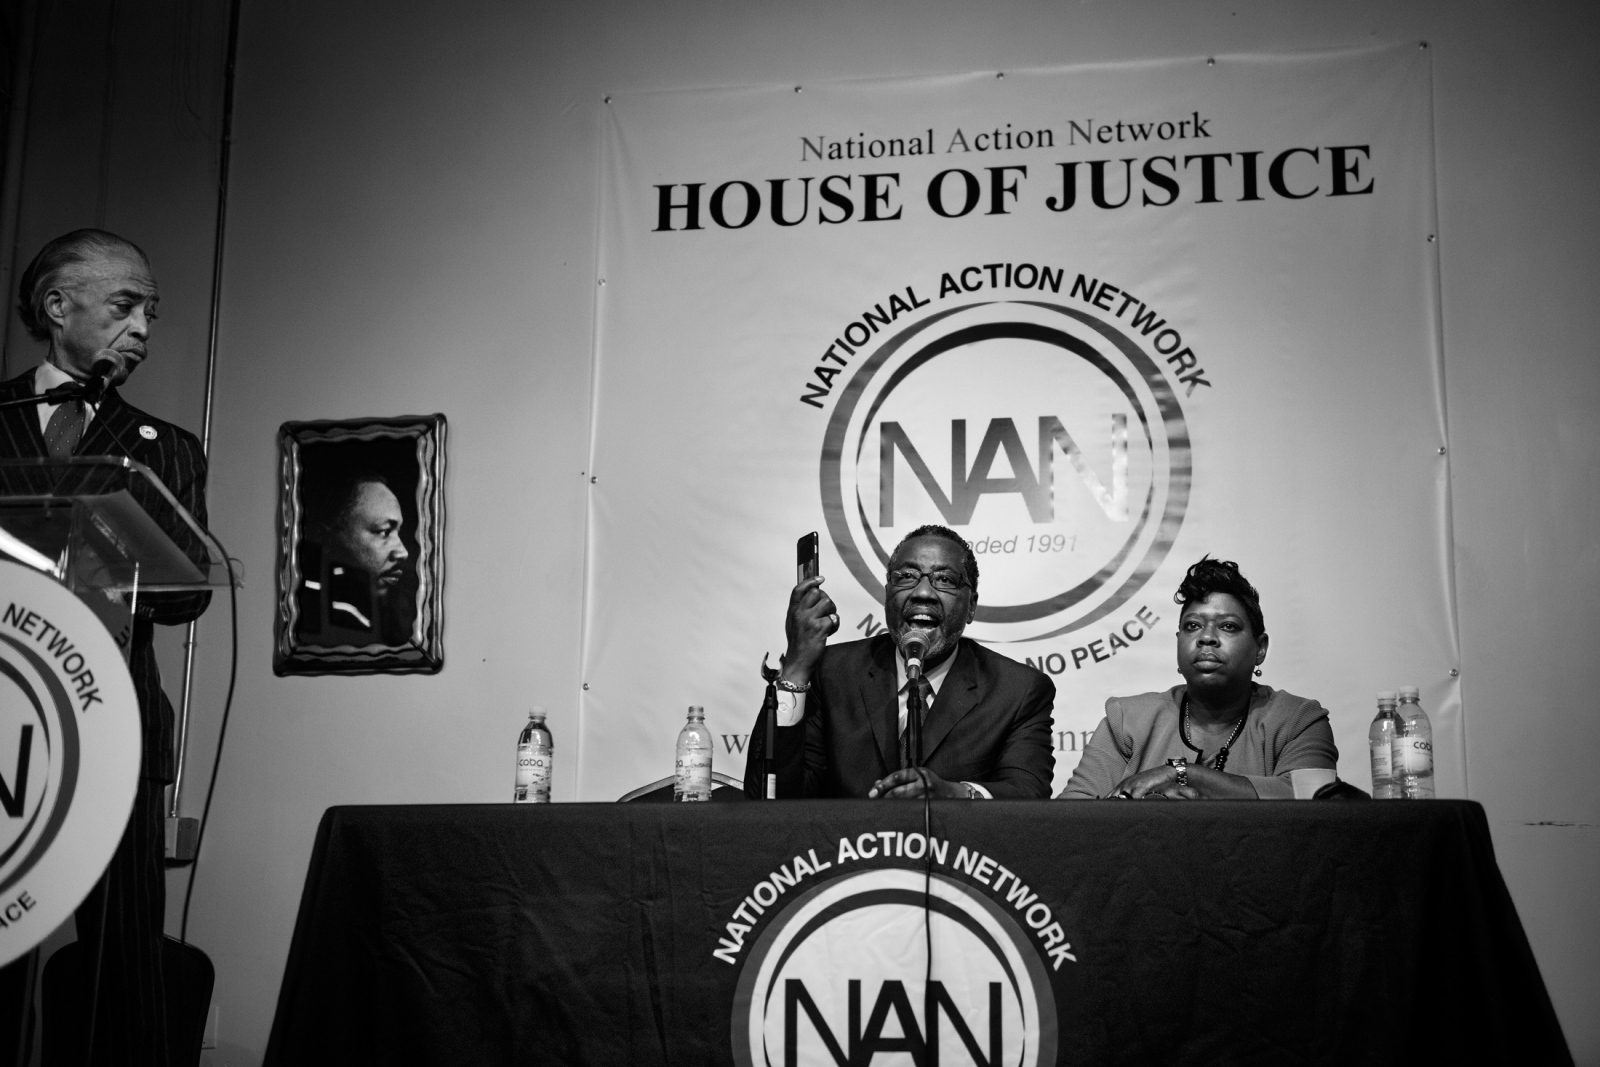 An emergency community meeting on the future of Rikers Island is hold on The House of Justice inWest Harlem. Norman Seabrook, former head of the correctional officers benevolent association, shows a picture of aninmate who was stabbed the night before by another inmate. He was later indicted by the FBI for corruption charges.Reverend Al Sharpton, a key civil rights activist and the recently appointed Bronx District Attorney Dercel Clark were alsopart of the debate.February 22nd, 2016.